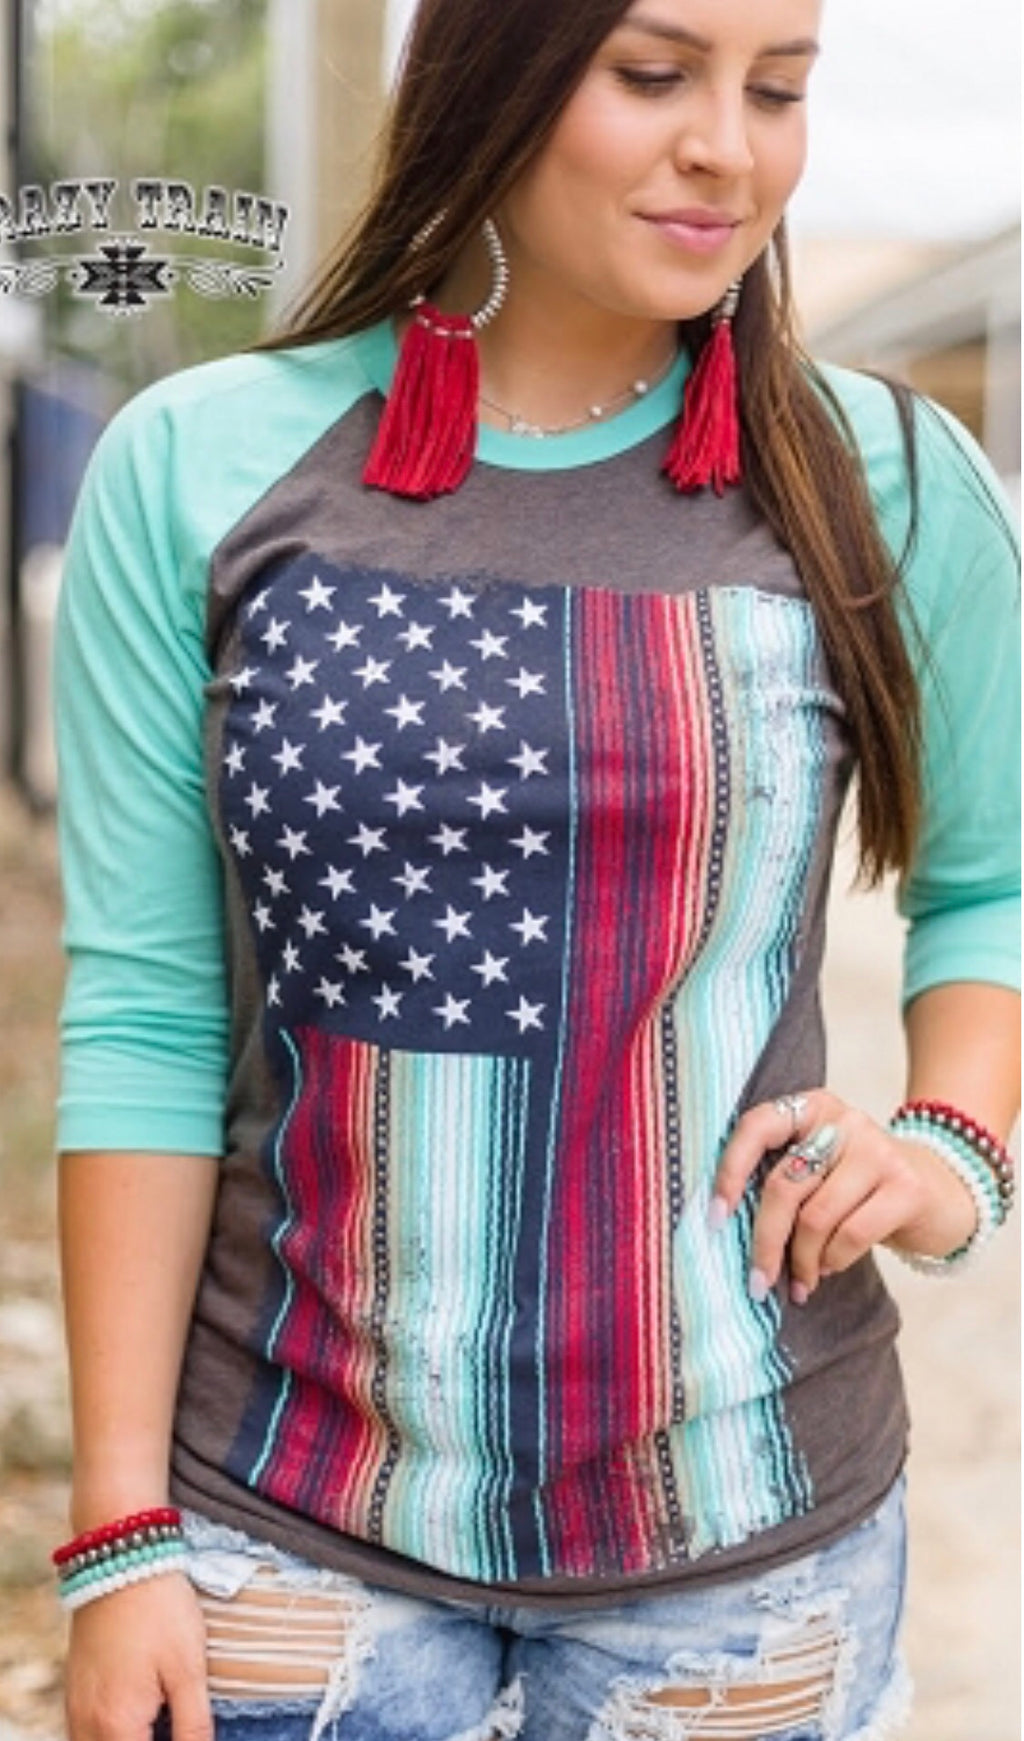 The Americana Serape Baseball Tee